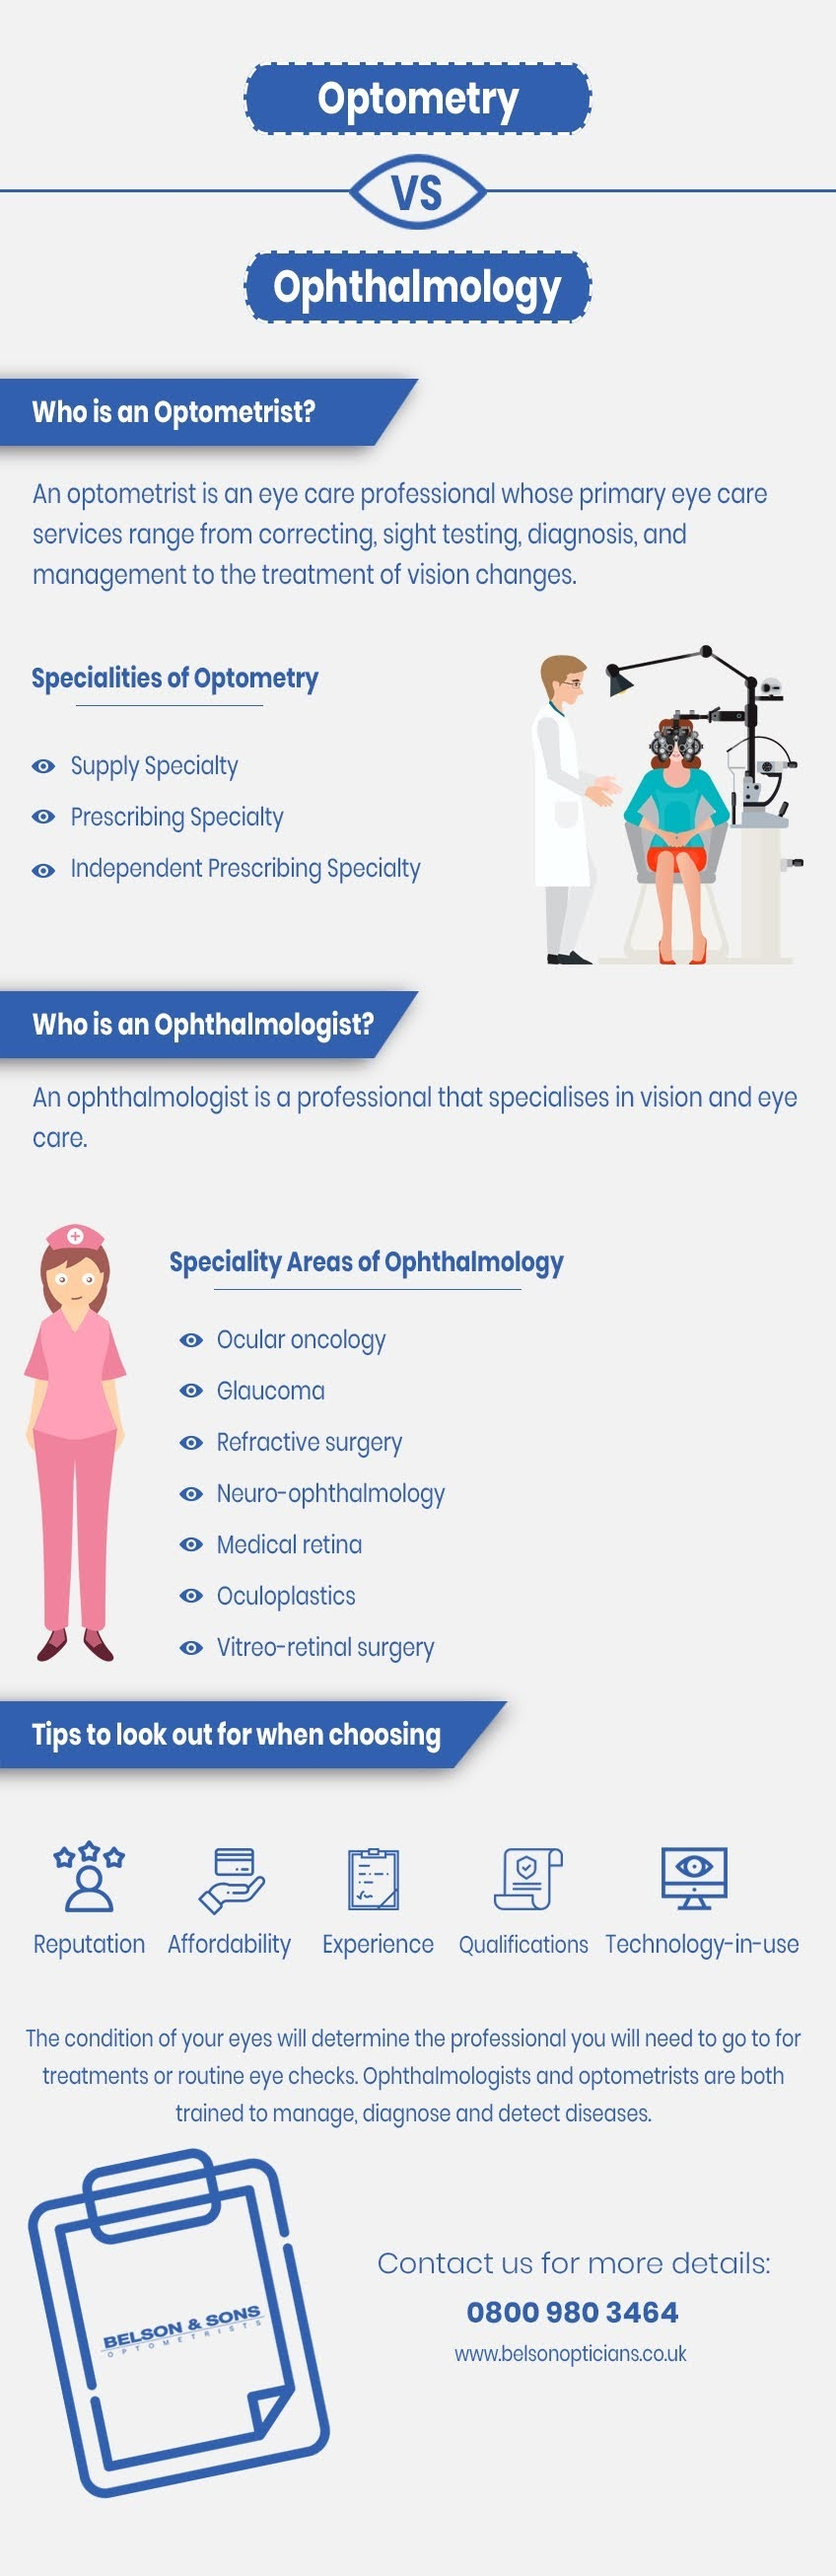 Difference Between Optometrist and Ophthalmologist #infographic